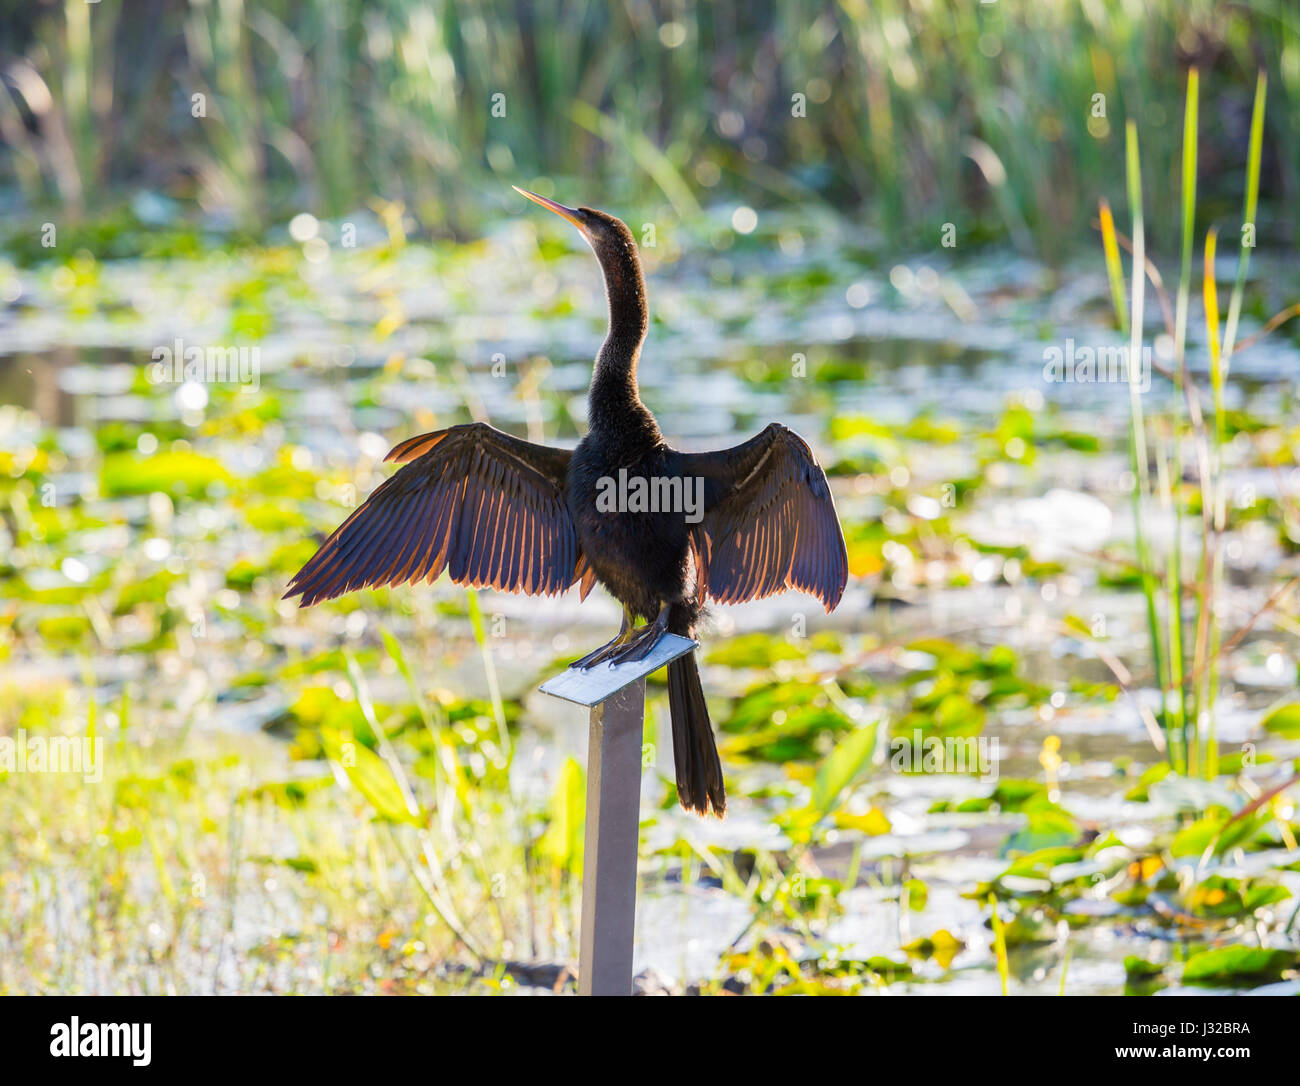 Anhinga bird sitting on sign in Florida Everglades and stretching its wings to dry - Stock Image